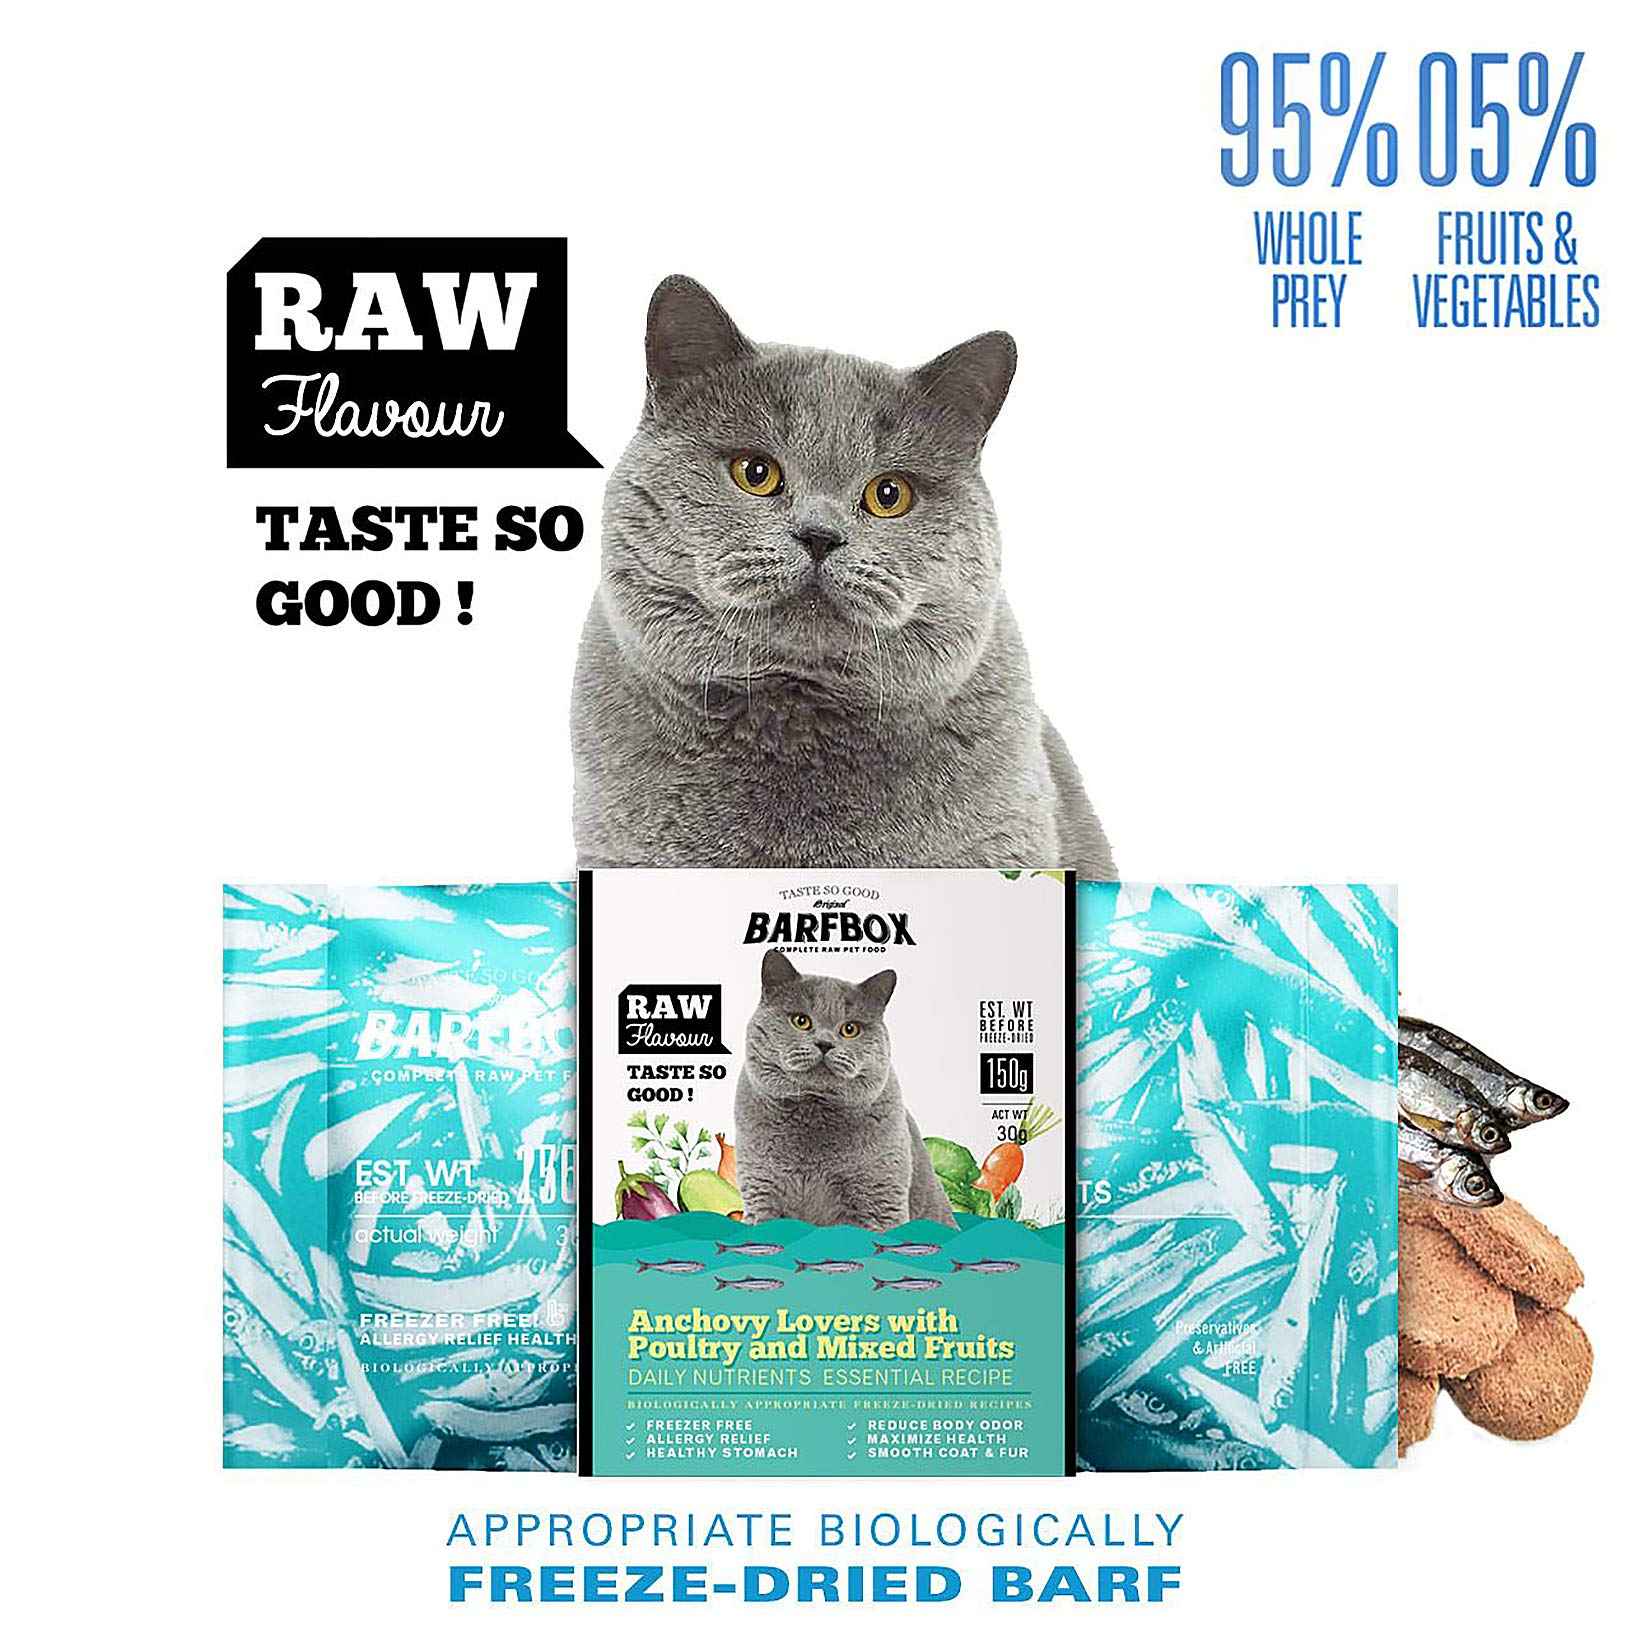 BARFBOX Freeze-Dried Barf Complete Raw Cat Food High Protein, Formula Anchovy Lover & Poultry Mixed Fruits, Daily Nutrients Essential Recipe Healthy for Long & Short Hair Cat, Kitten 30 g. by BARFBOX